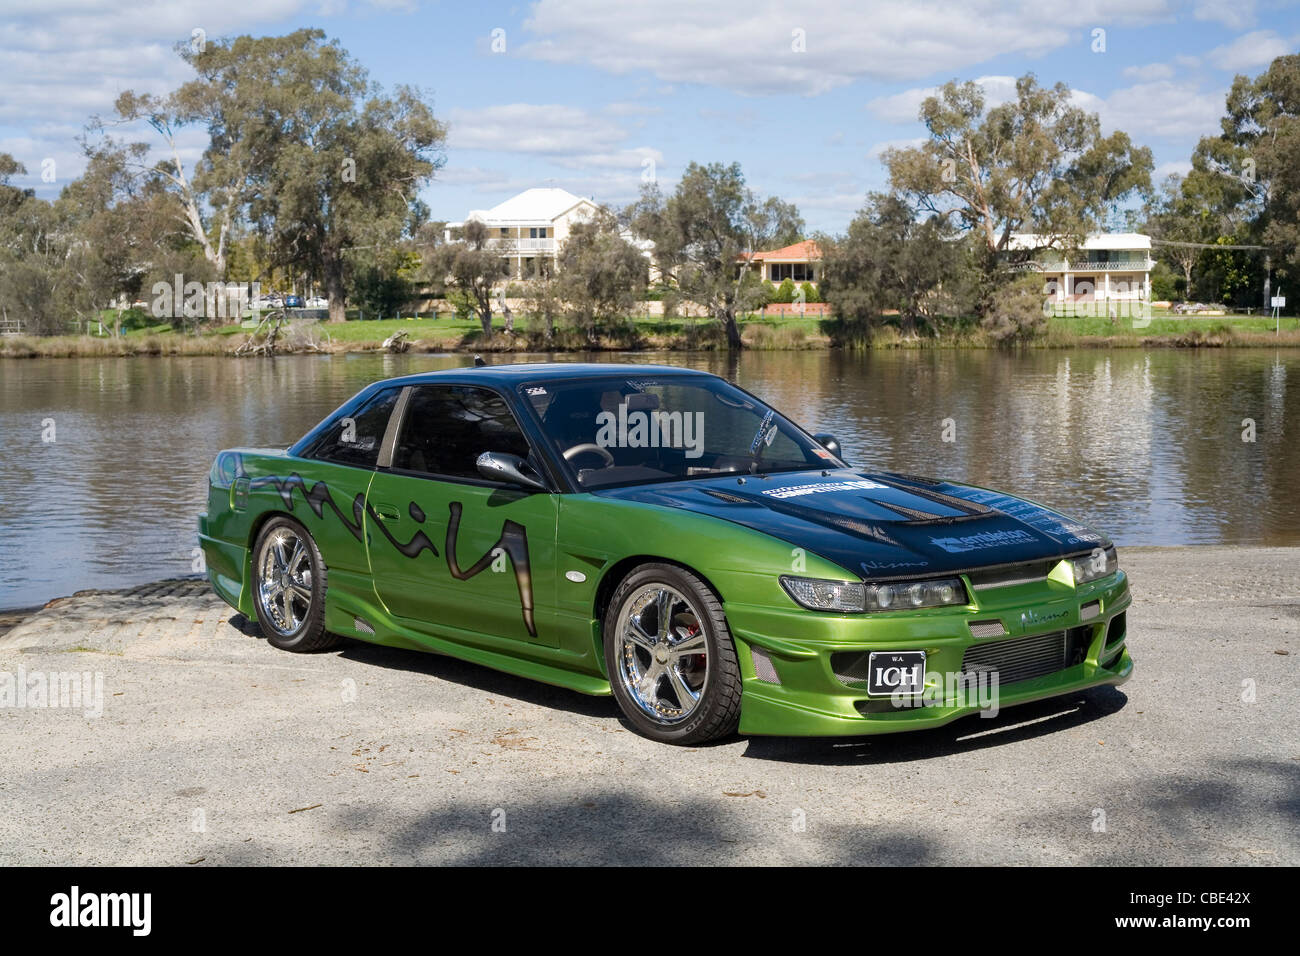 Page 2 Modified Car High Resolution Stock Photography And Images Alamy